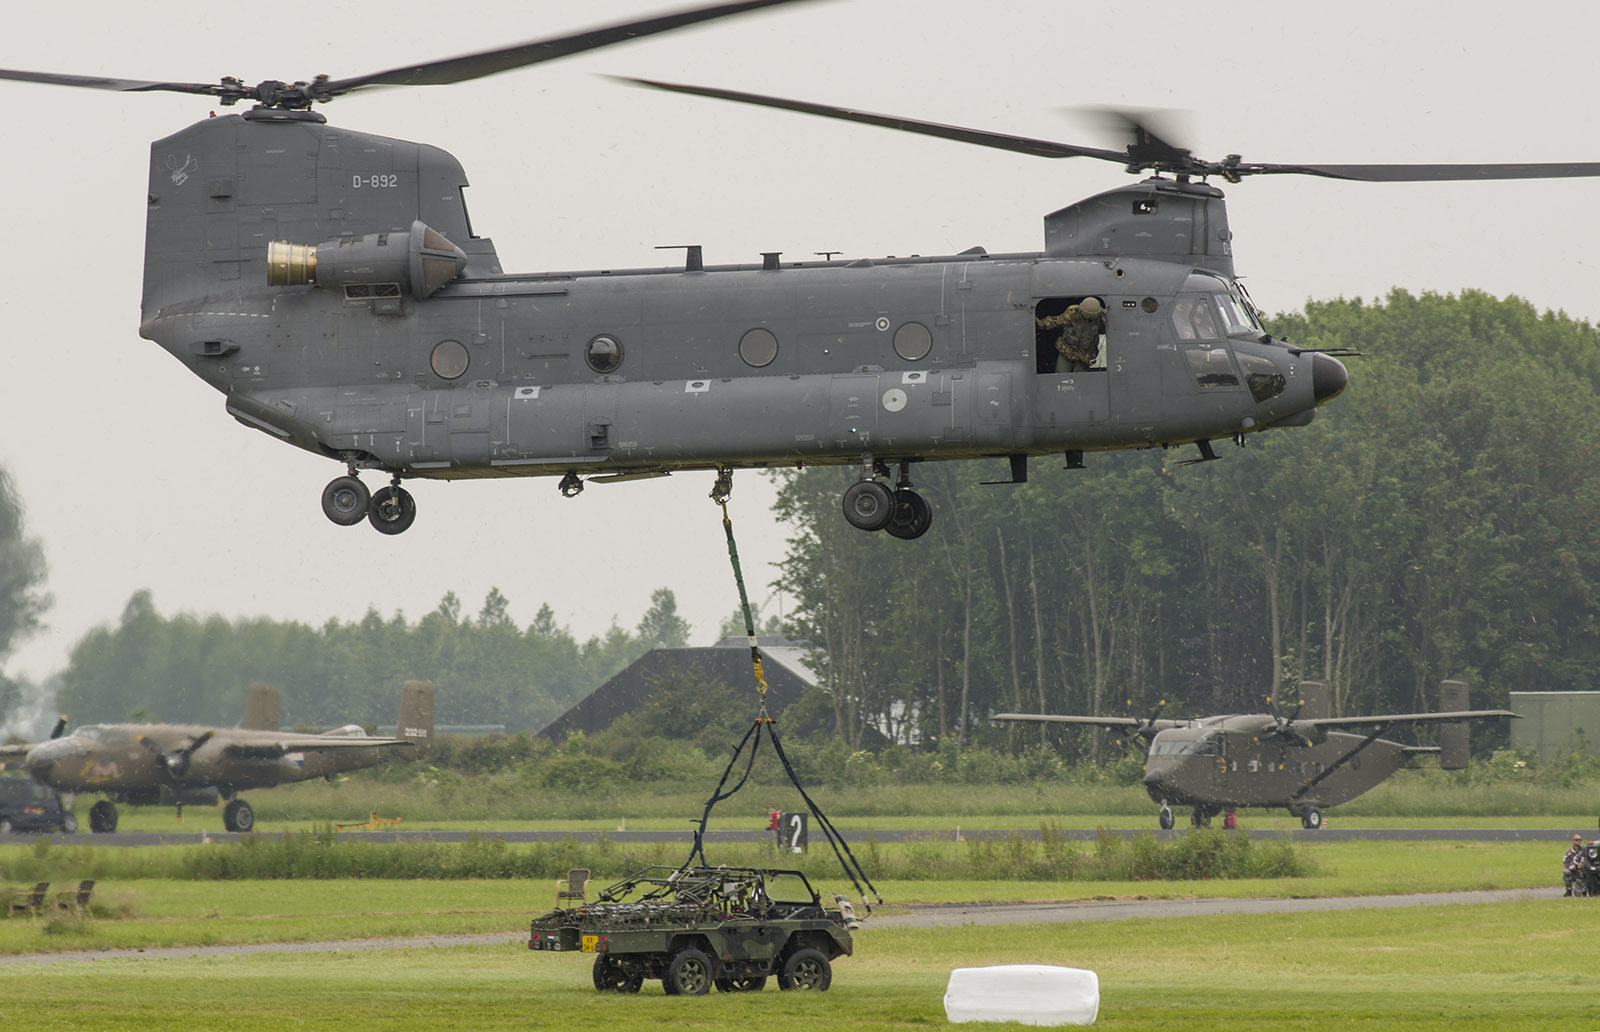 Fil rouge 2019 : Sikorsky CH-54 Skycrane (Revell 1/72) - Page 3 IMG3453-Boeing-CH-47F-Chinook-414-D-892-Netherlands-air-force-s